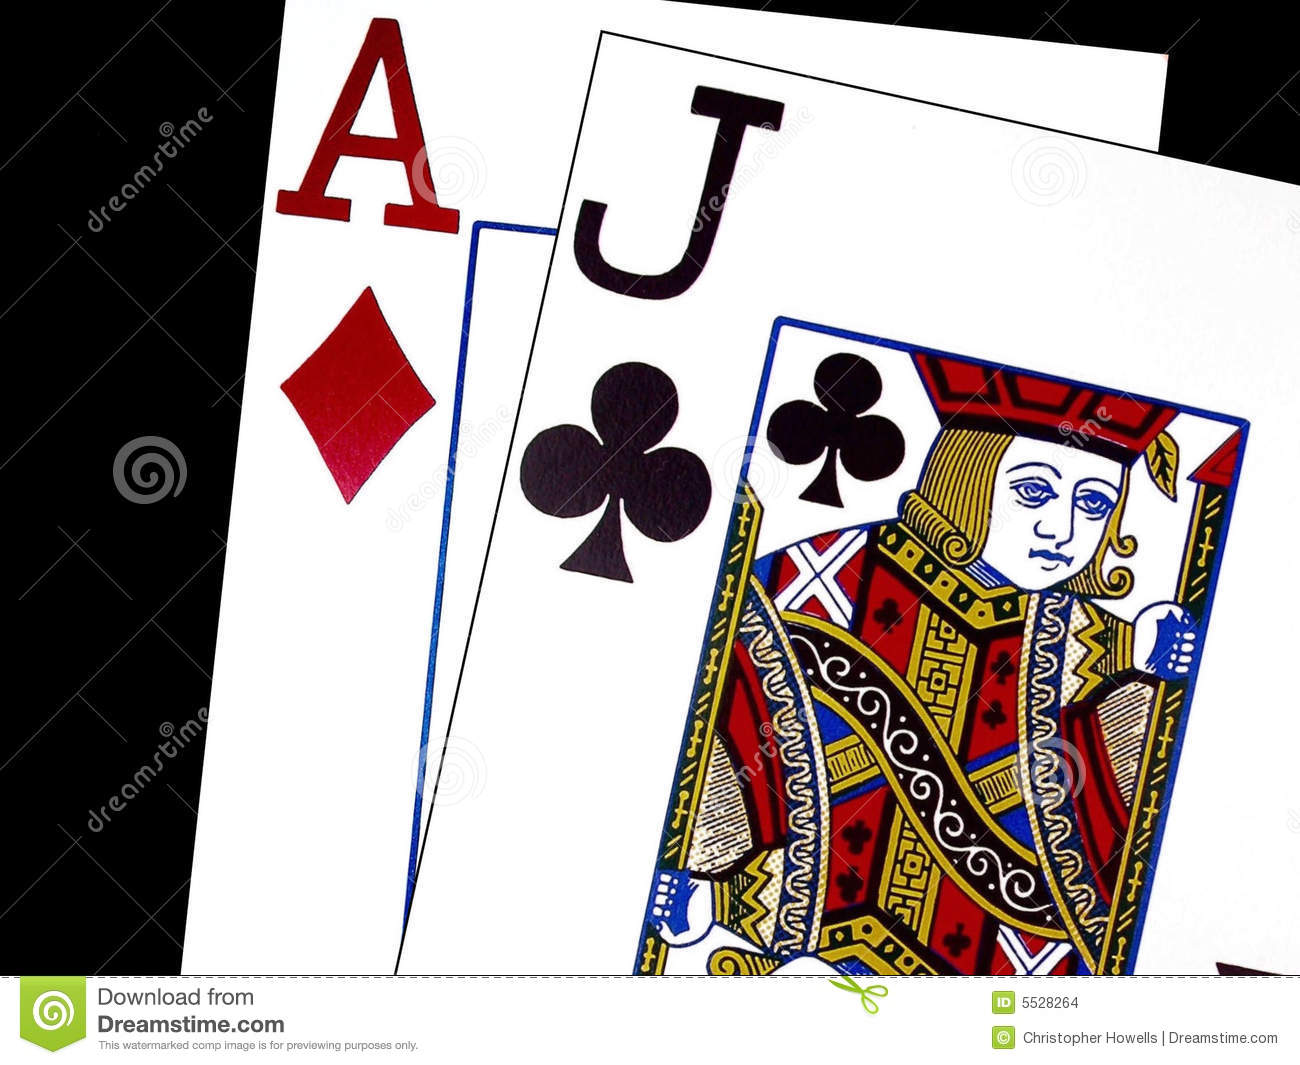 aces and 8s lottery ticket jack card images